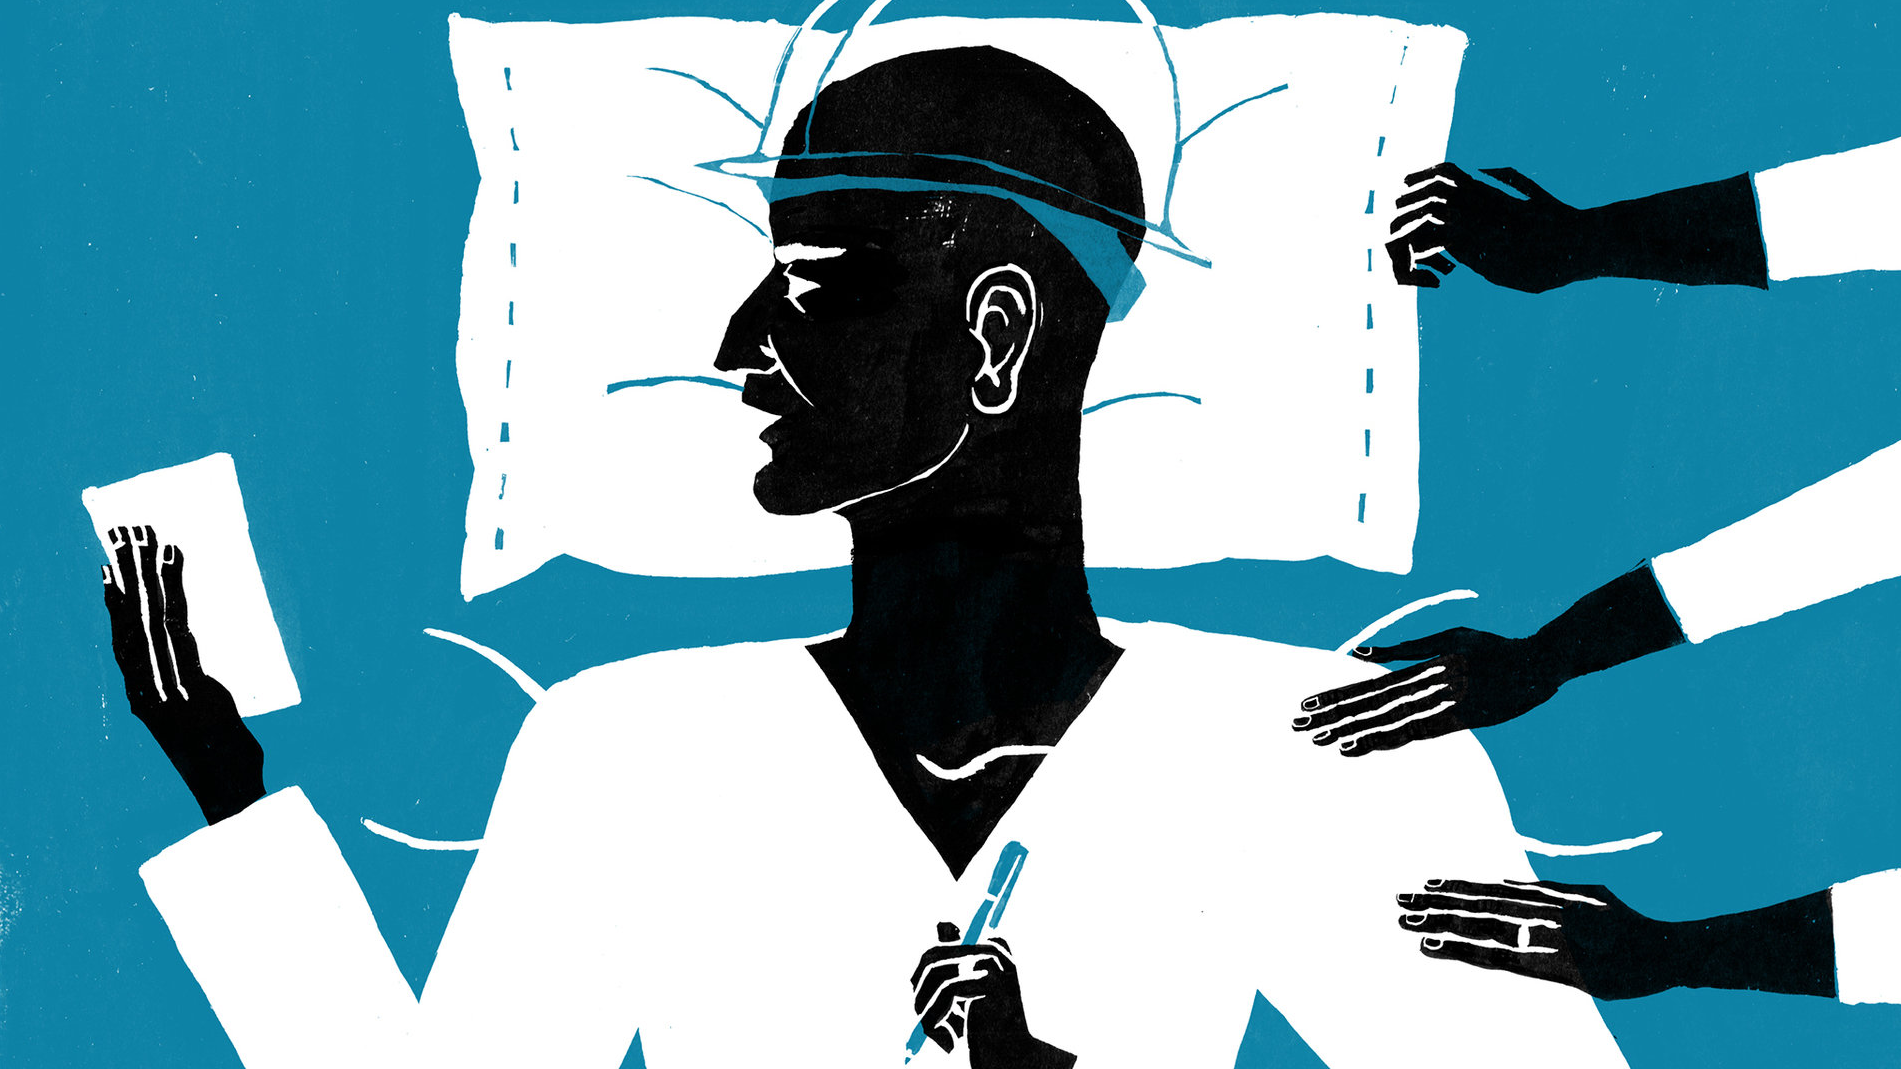 Illustration of a man in a hospital bed with pen and paper